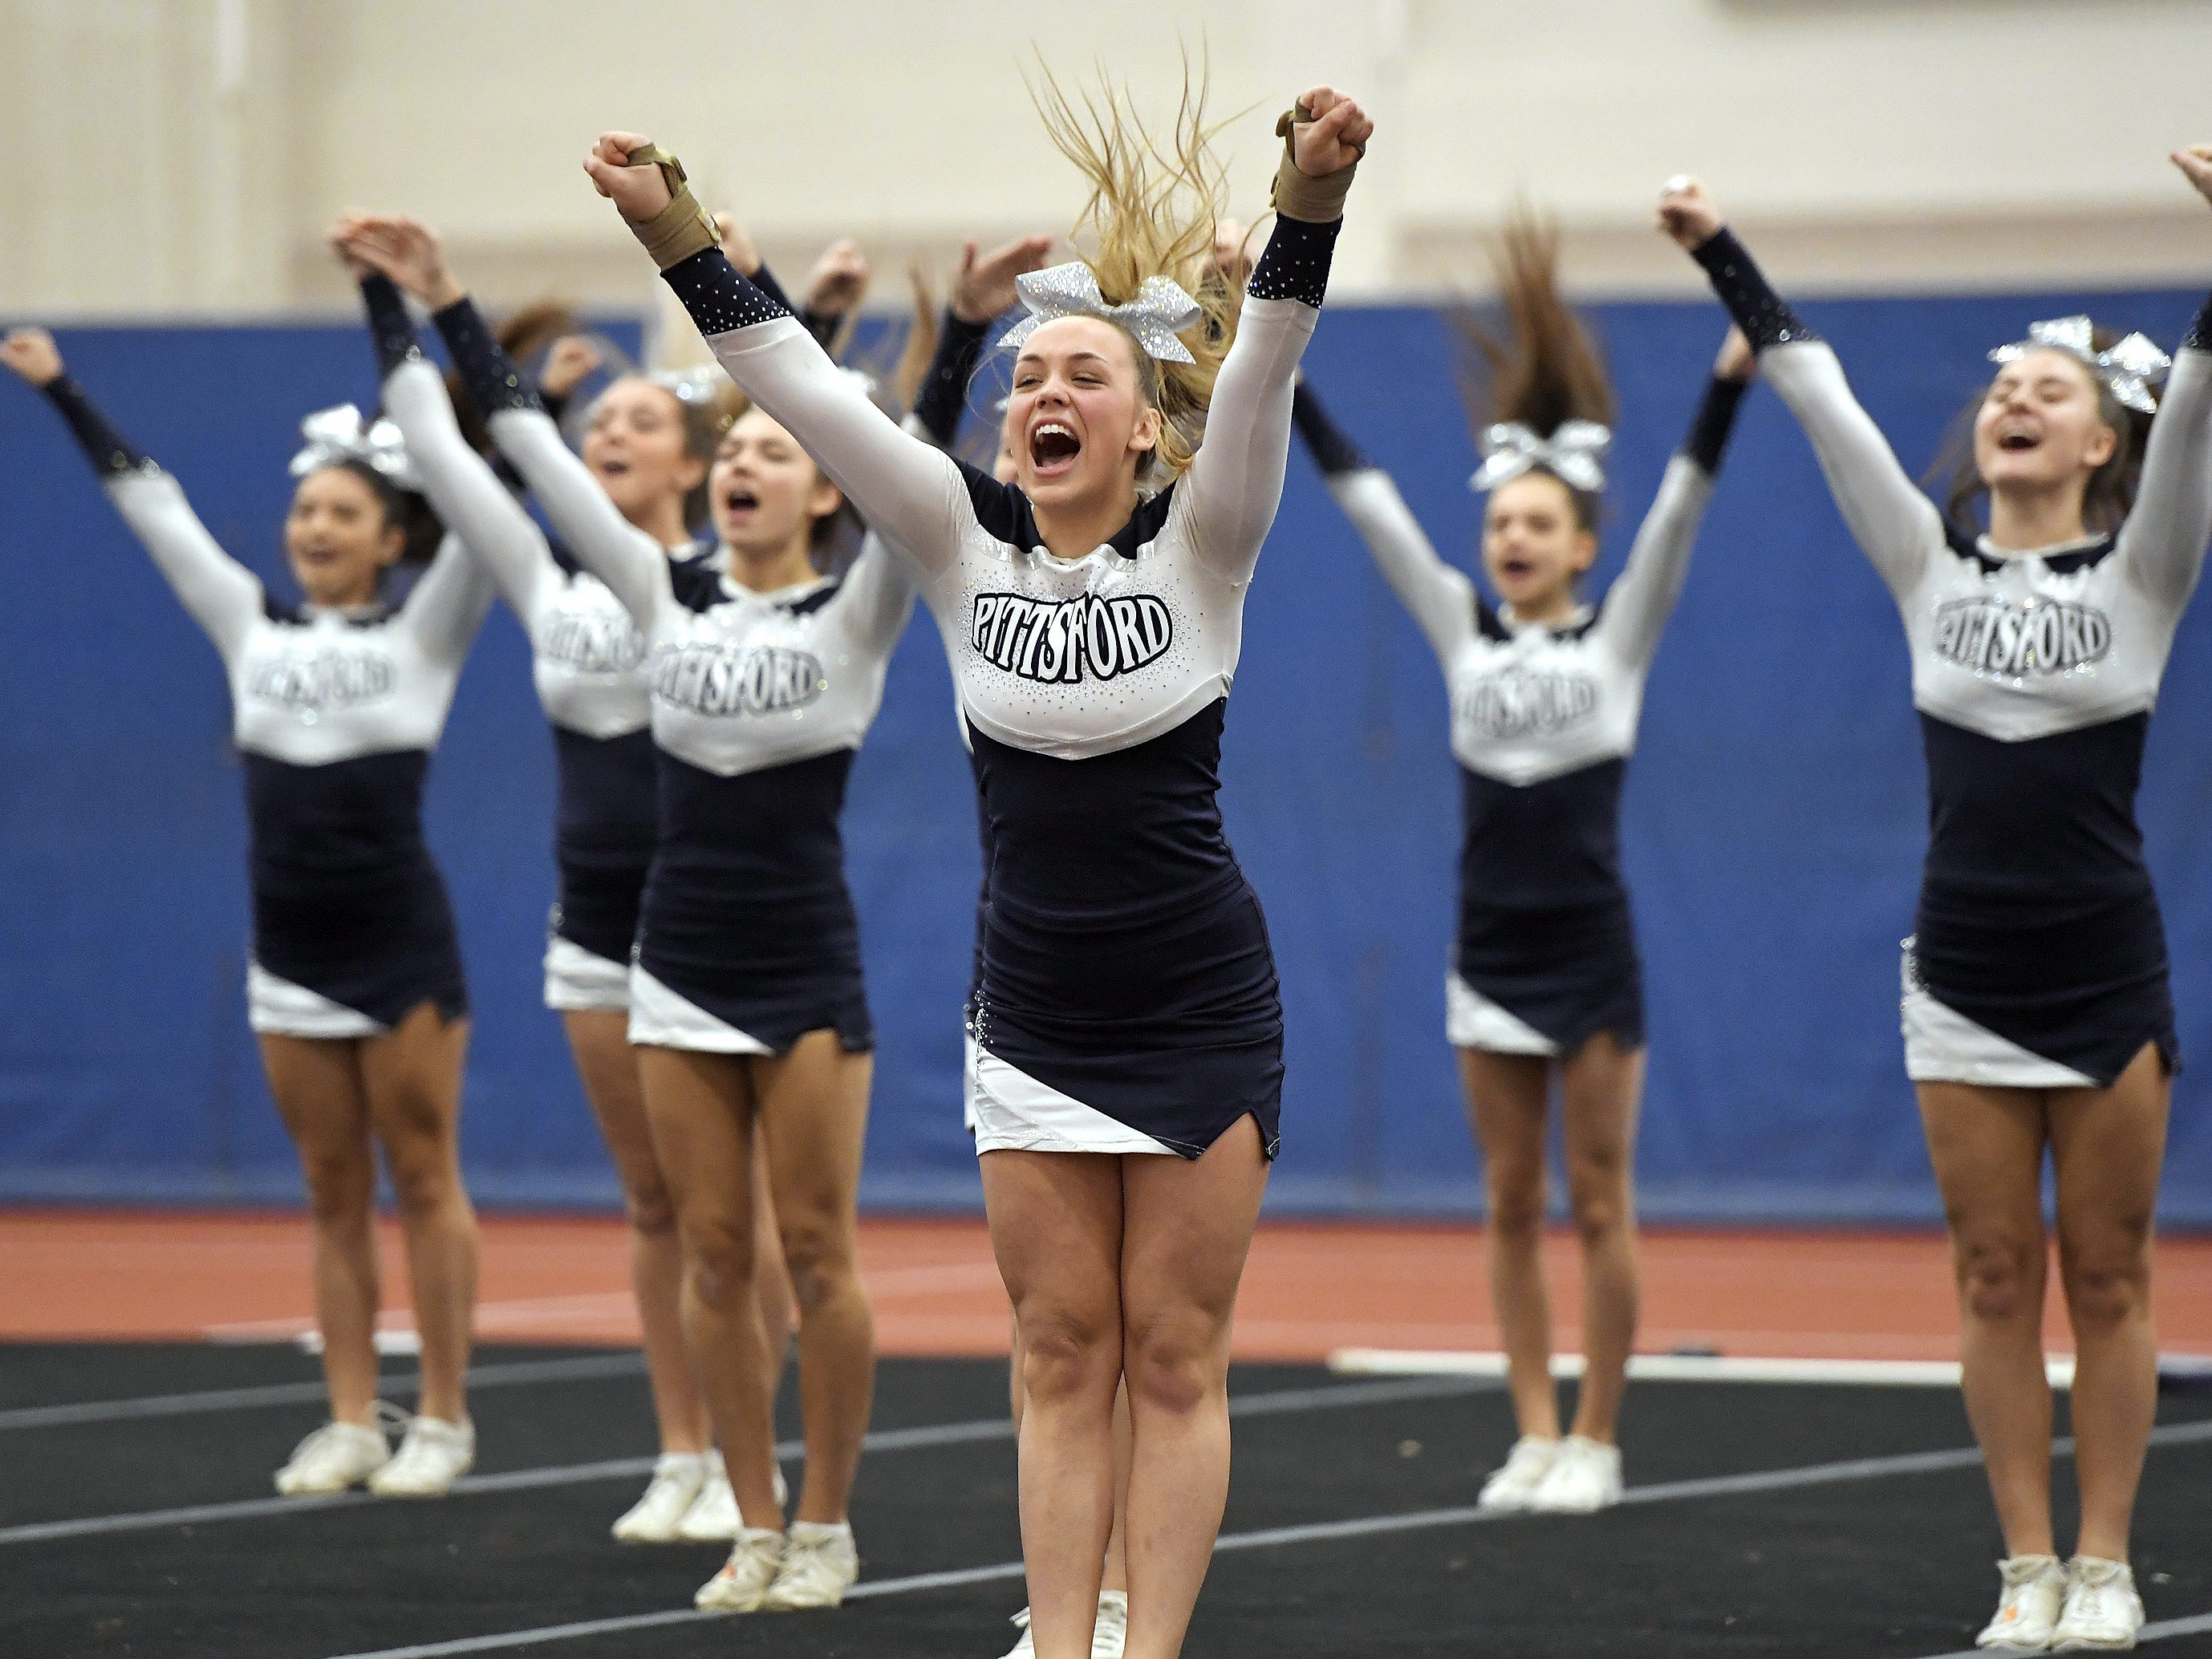 Pittsford cheerleaders perform their routine during the Section V Fall Cheerleading Championships at RIT, Saturday, Oct. 27, 2018.